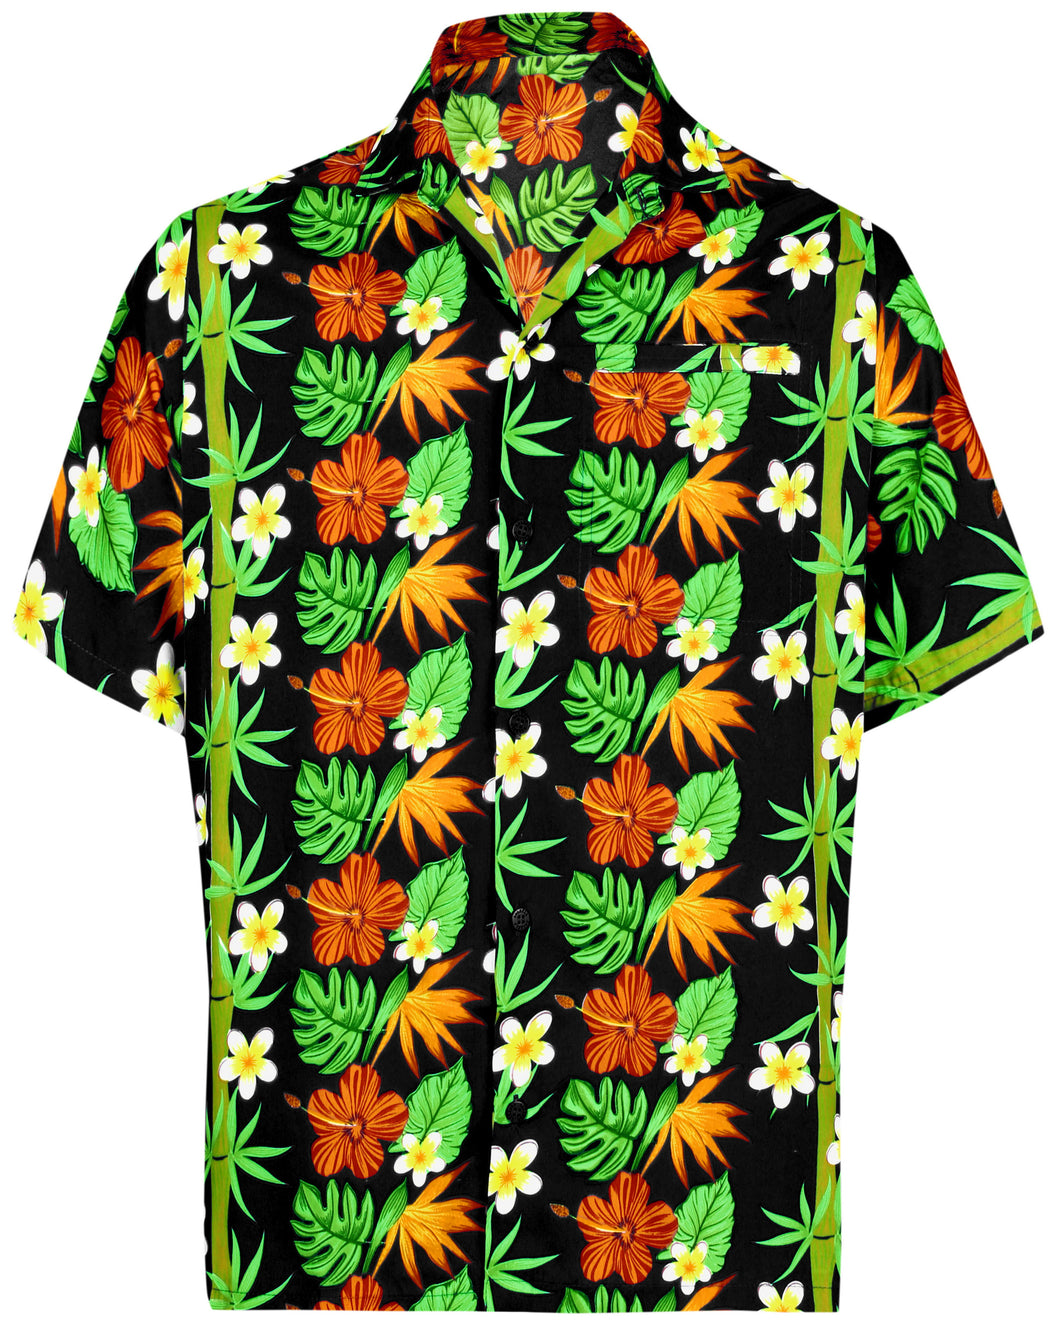 la-leela-mens-regular-size-pocket-beach-hawaiian-shirt-for-aloha-tropical-beach-front-pocket-short-sleeve-black